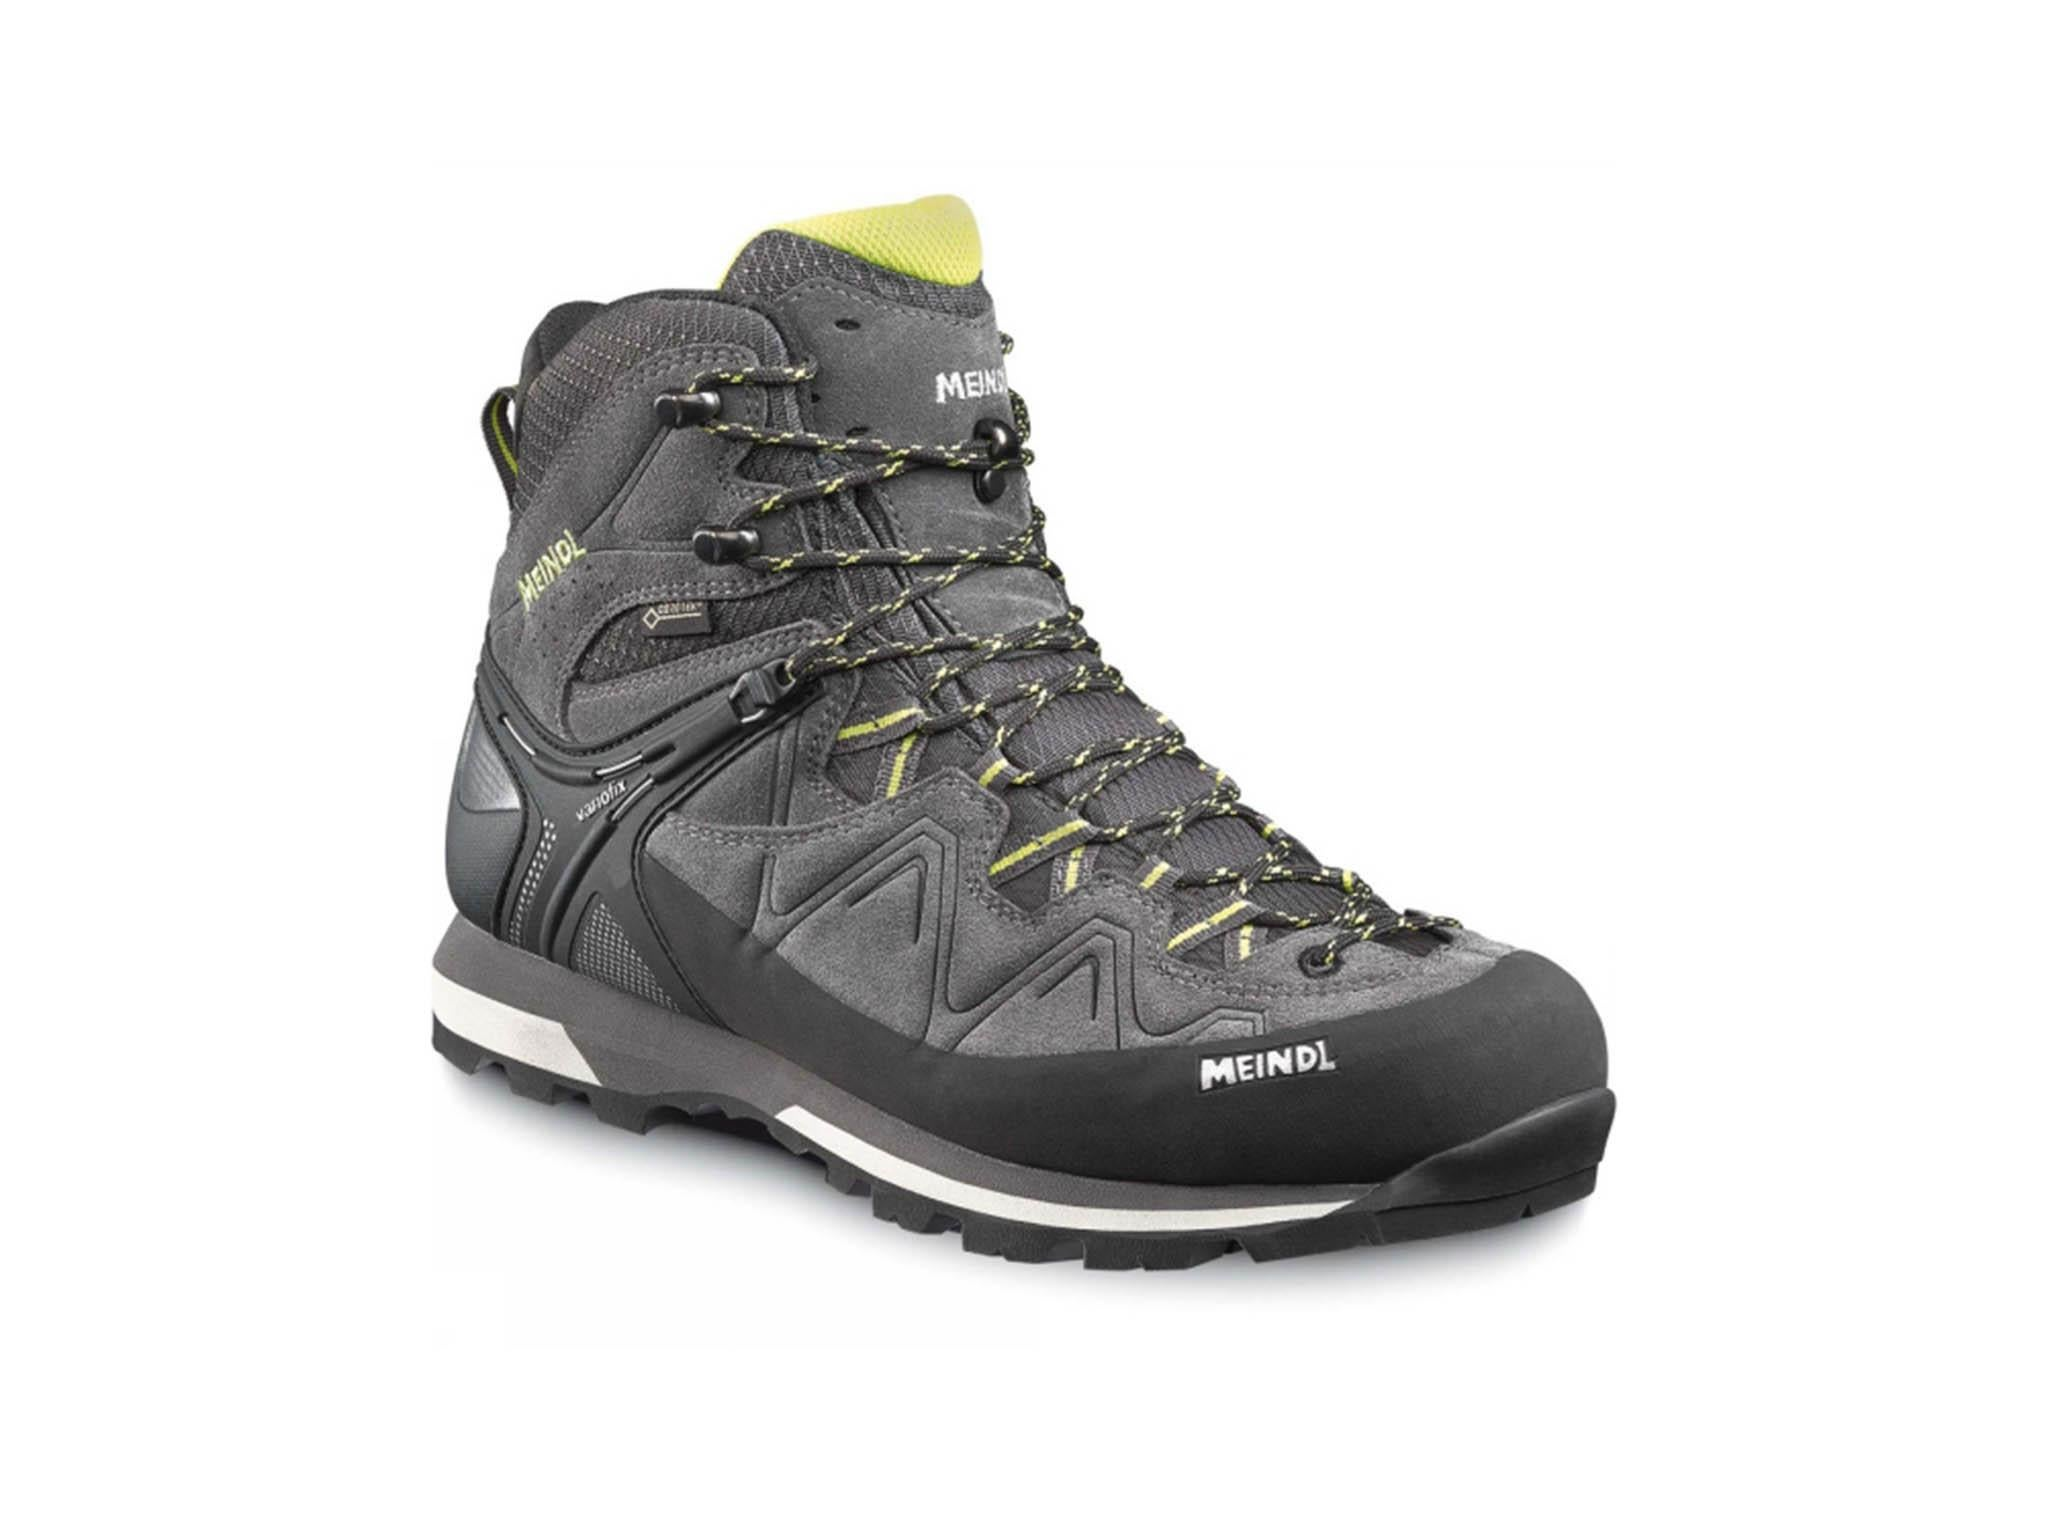 salomon mens outline mid gtx boot usb